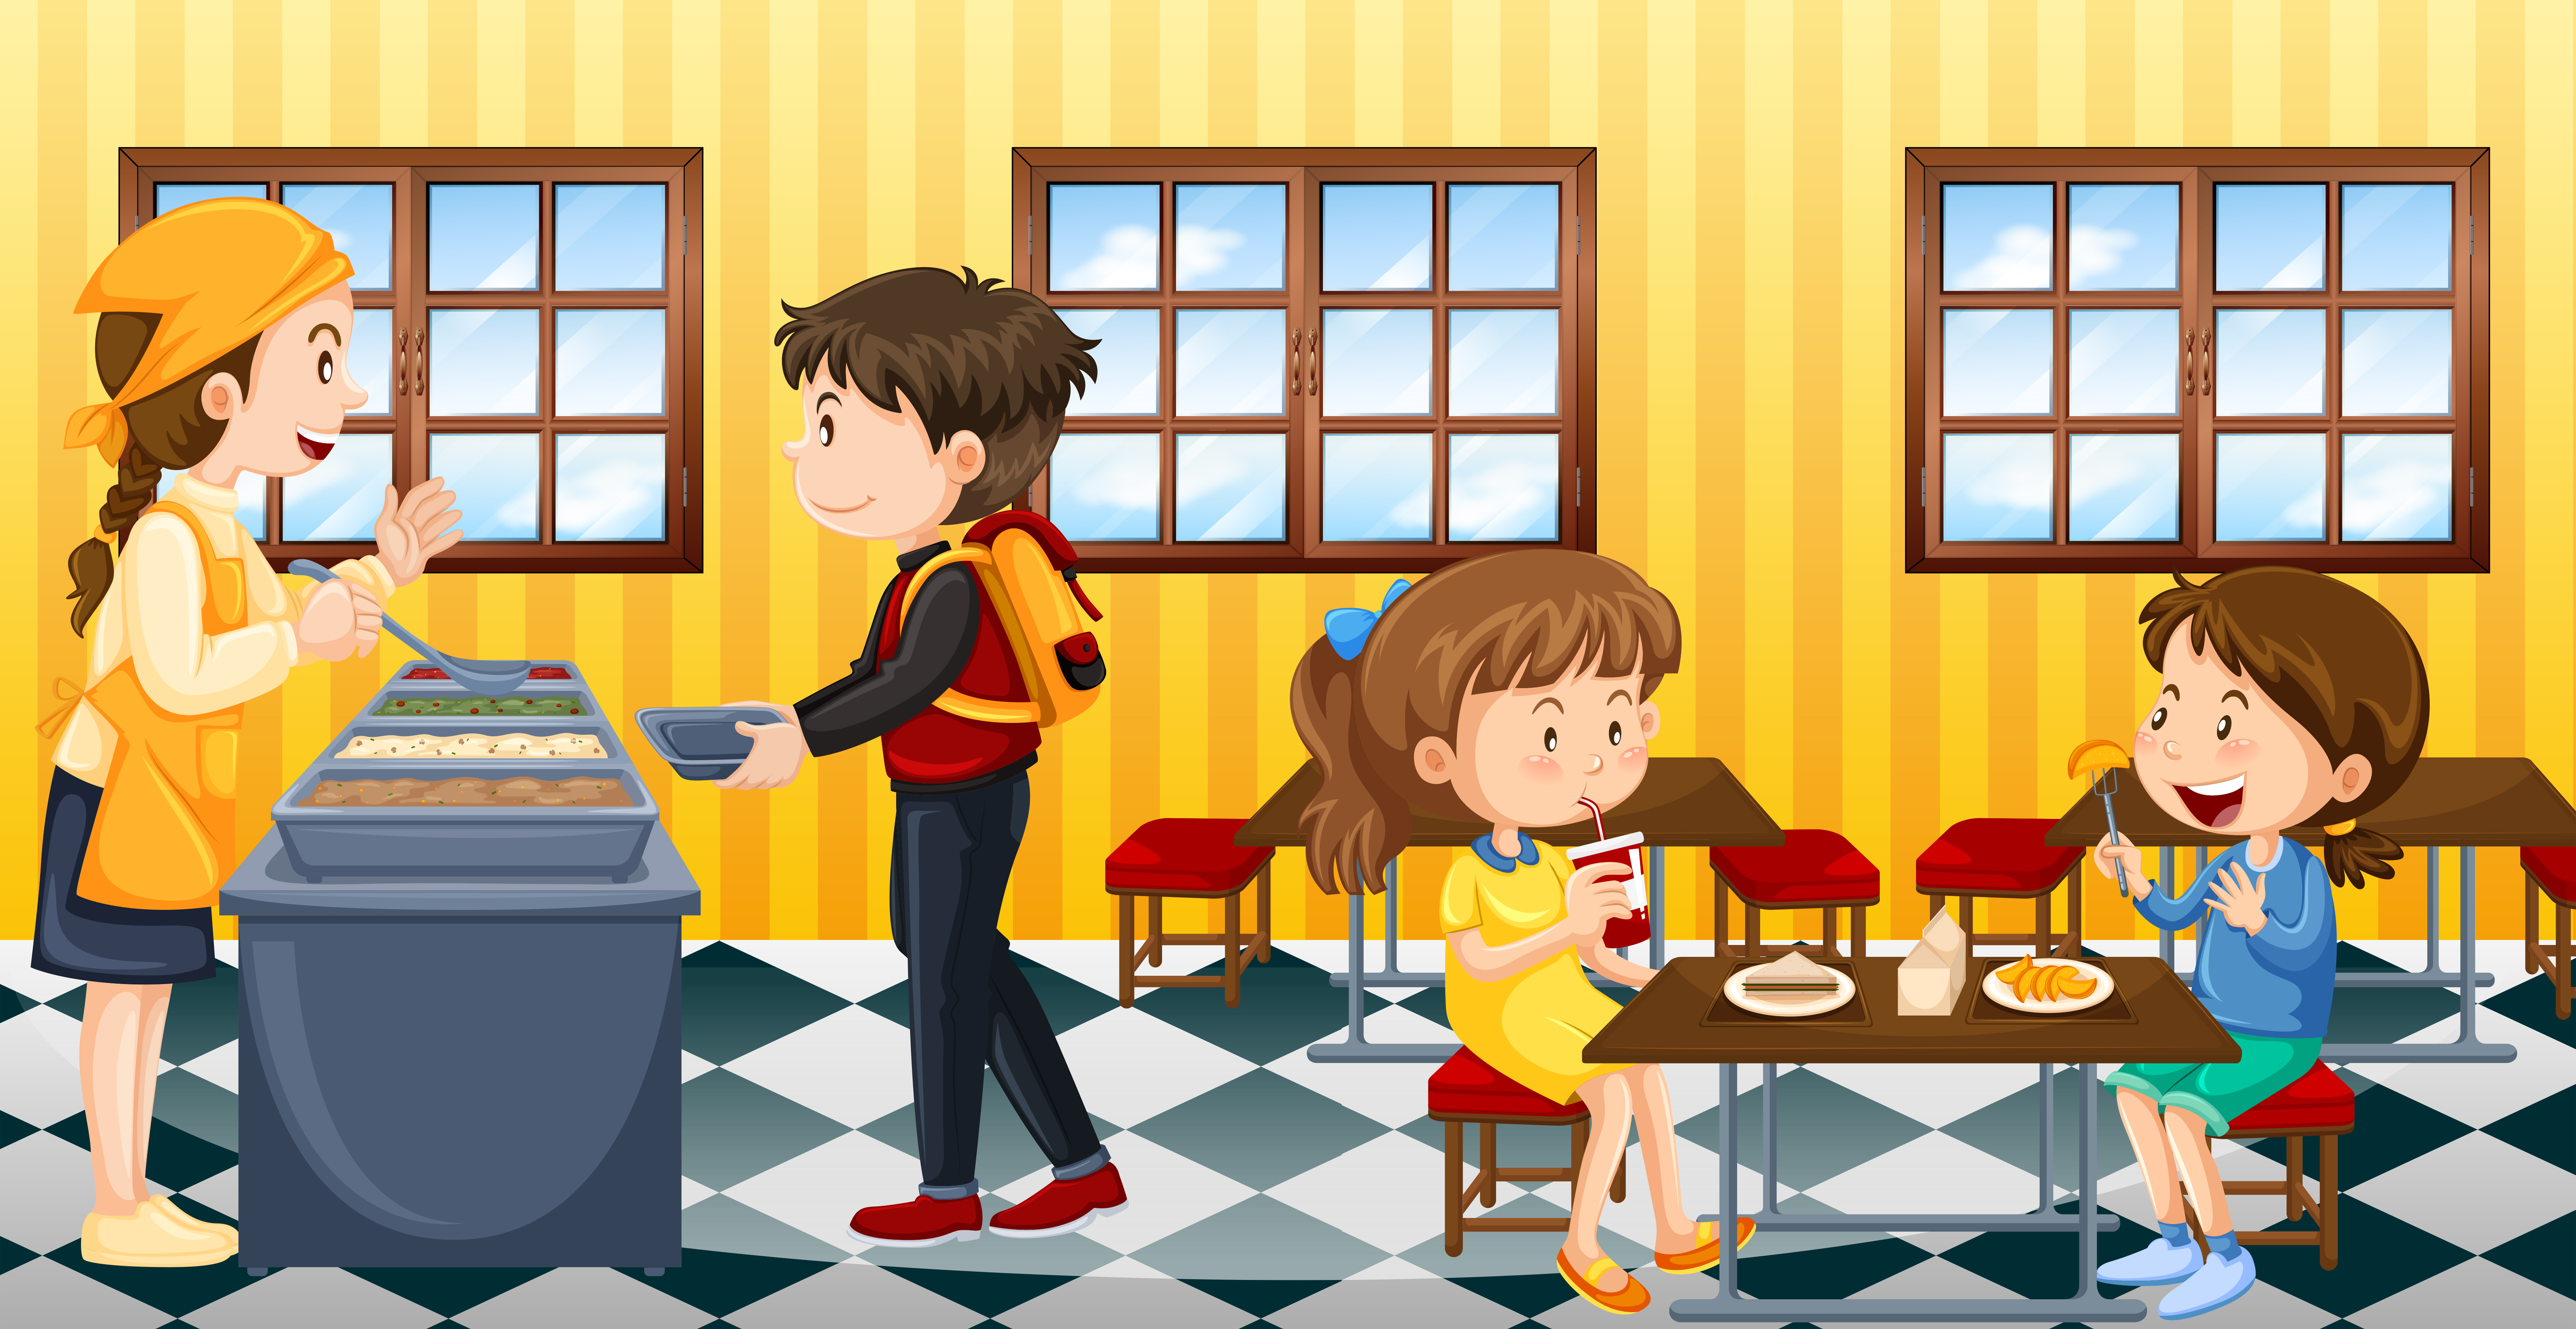 Scene with people eating in canteen - Download Free ...